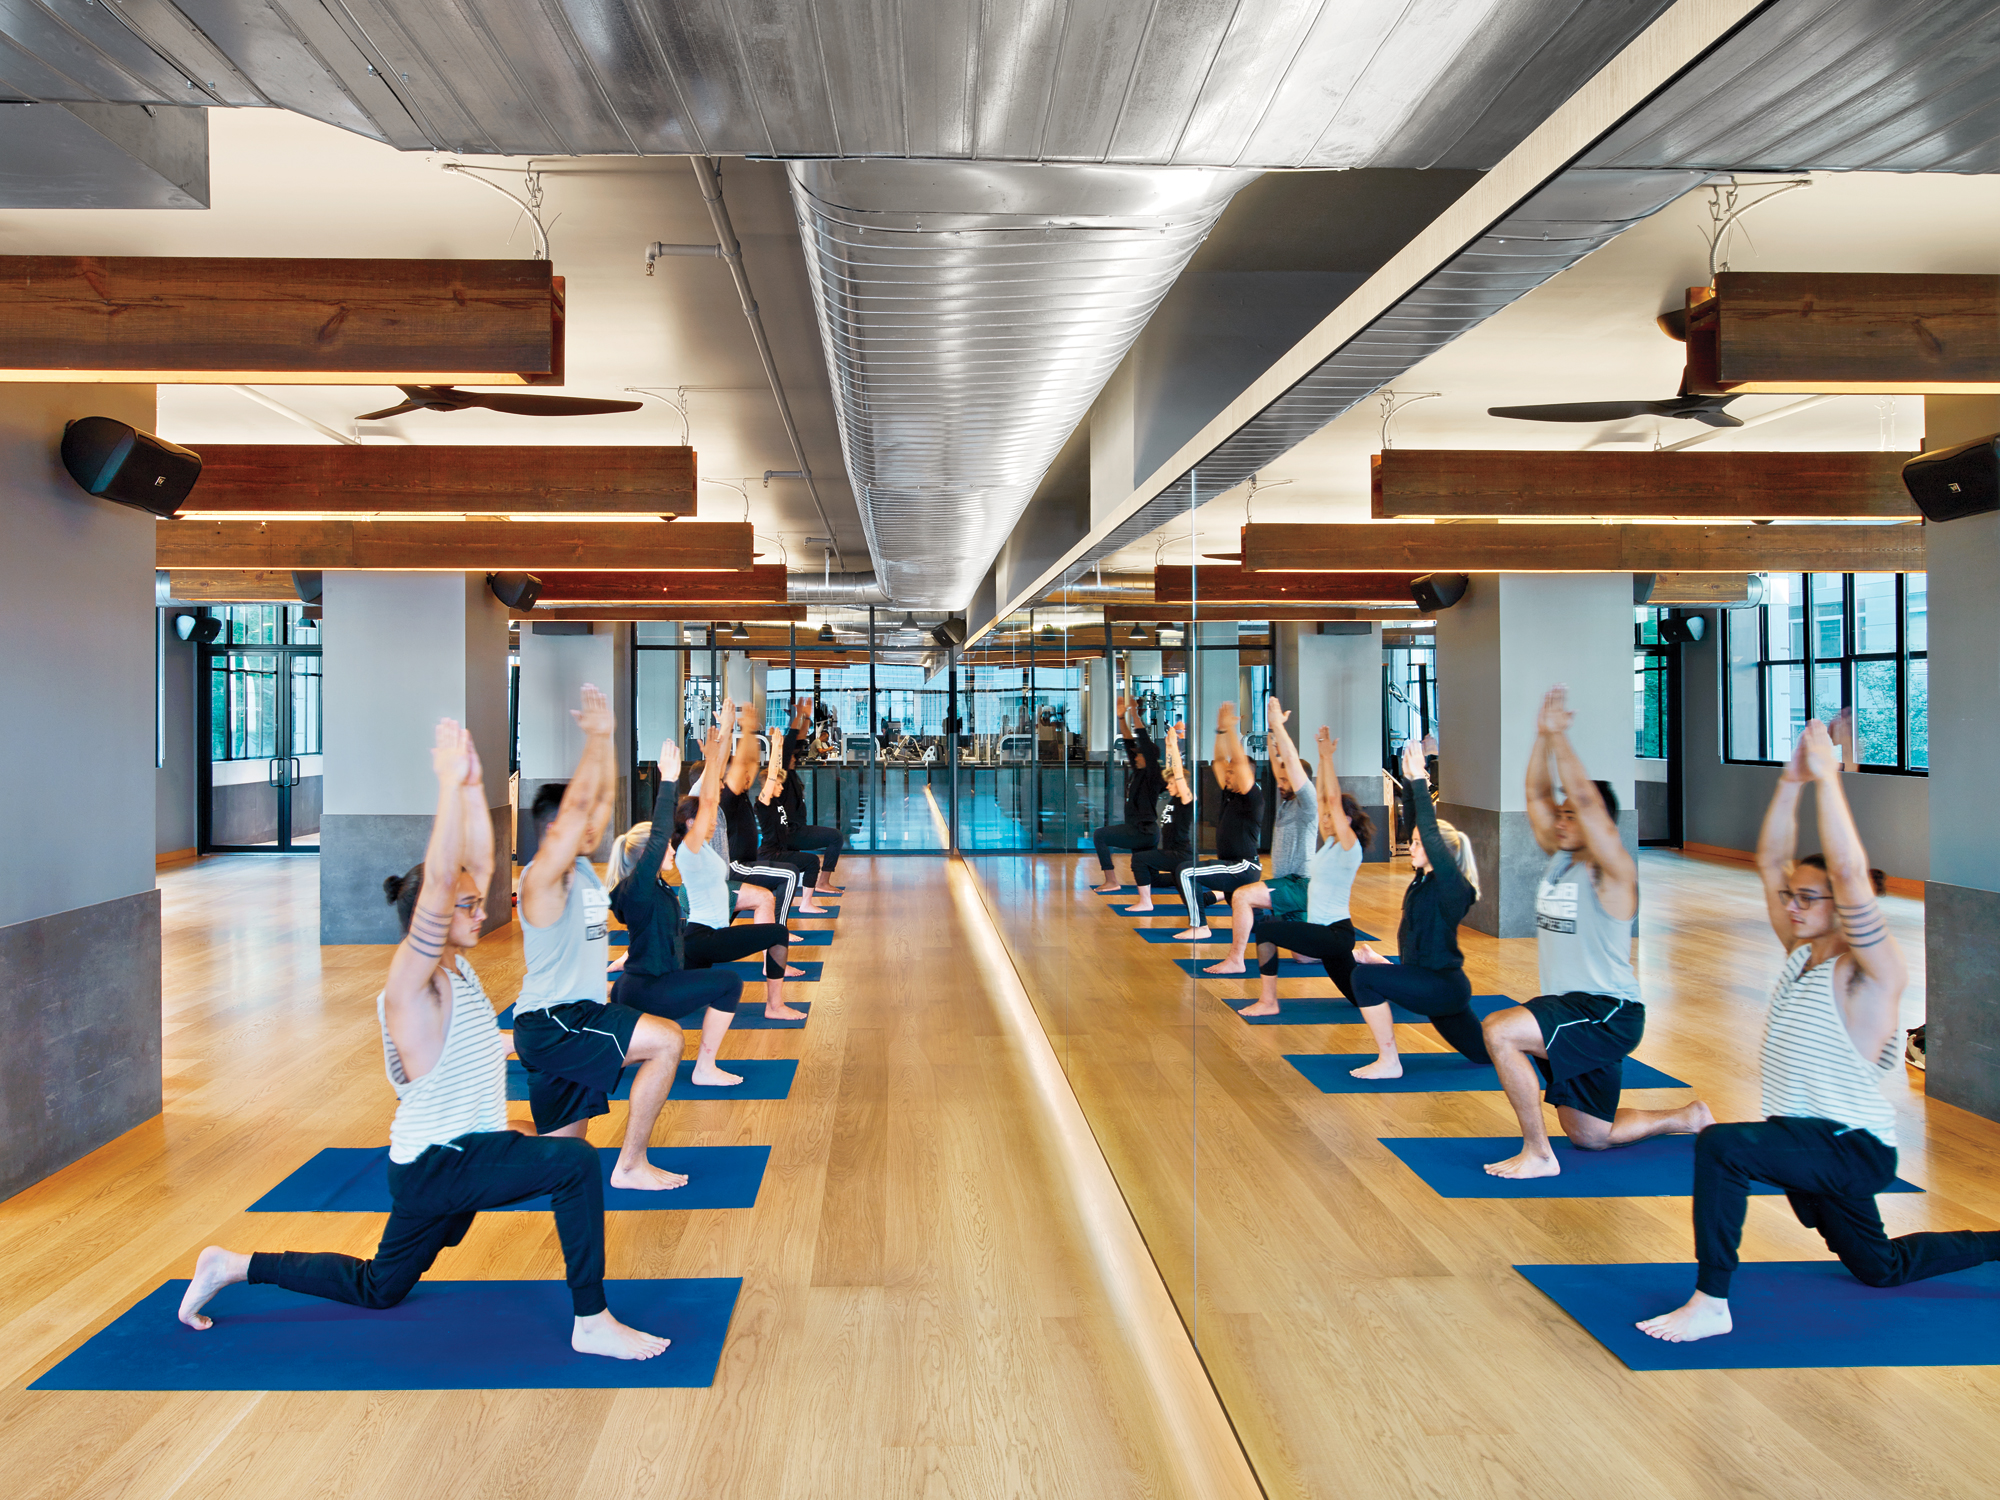 Inc architecture design gives an equinox gym the loft